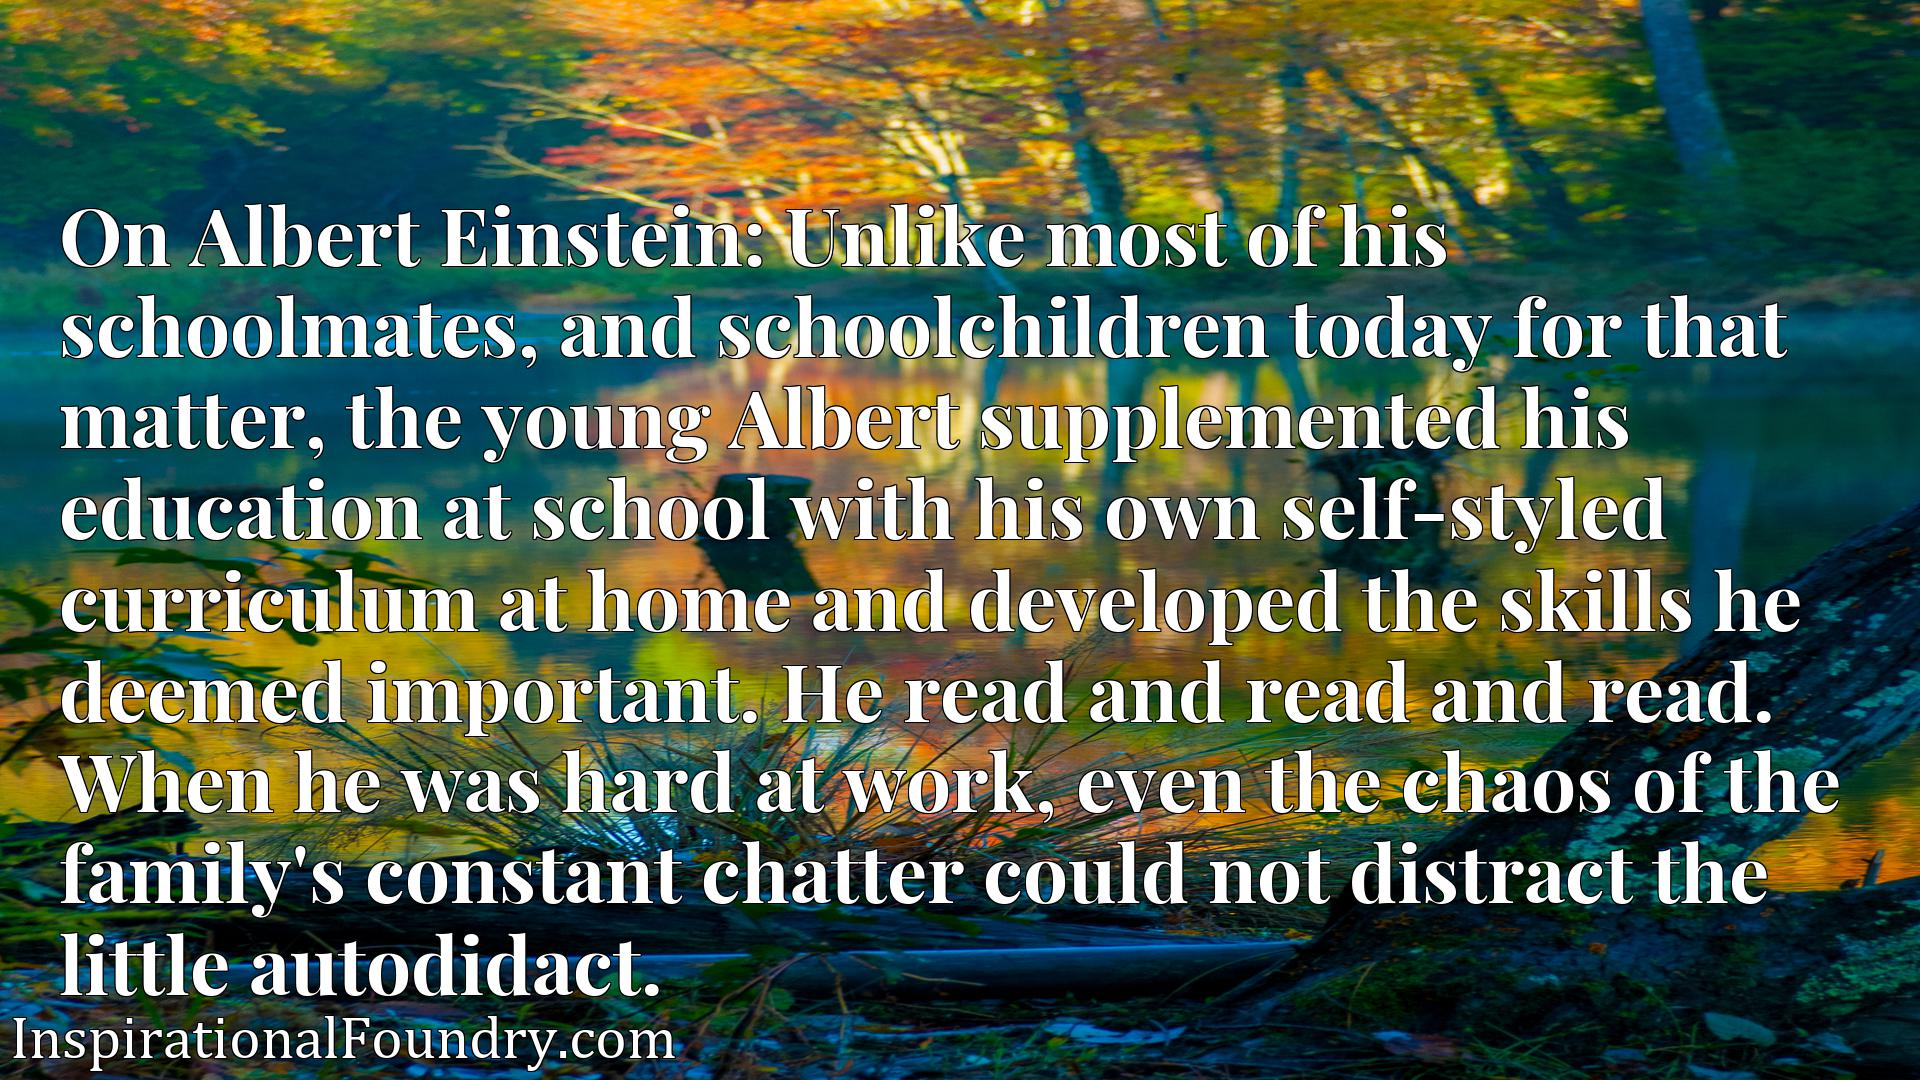 Quote Picture :On Albert Einstein: Unlike most of his schoolmates, and schoolchildren today for that matter, the young Albert supplemented his education at school with his own self-styled curriculum at home and developed the skills he deemed important. He read and read and read. When he was hard at work, even the chaos of the family's constant chatter could not distract the little autodidact.